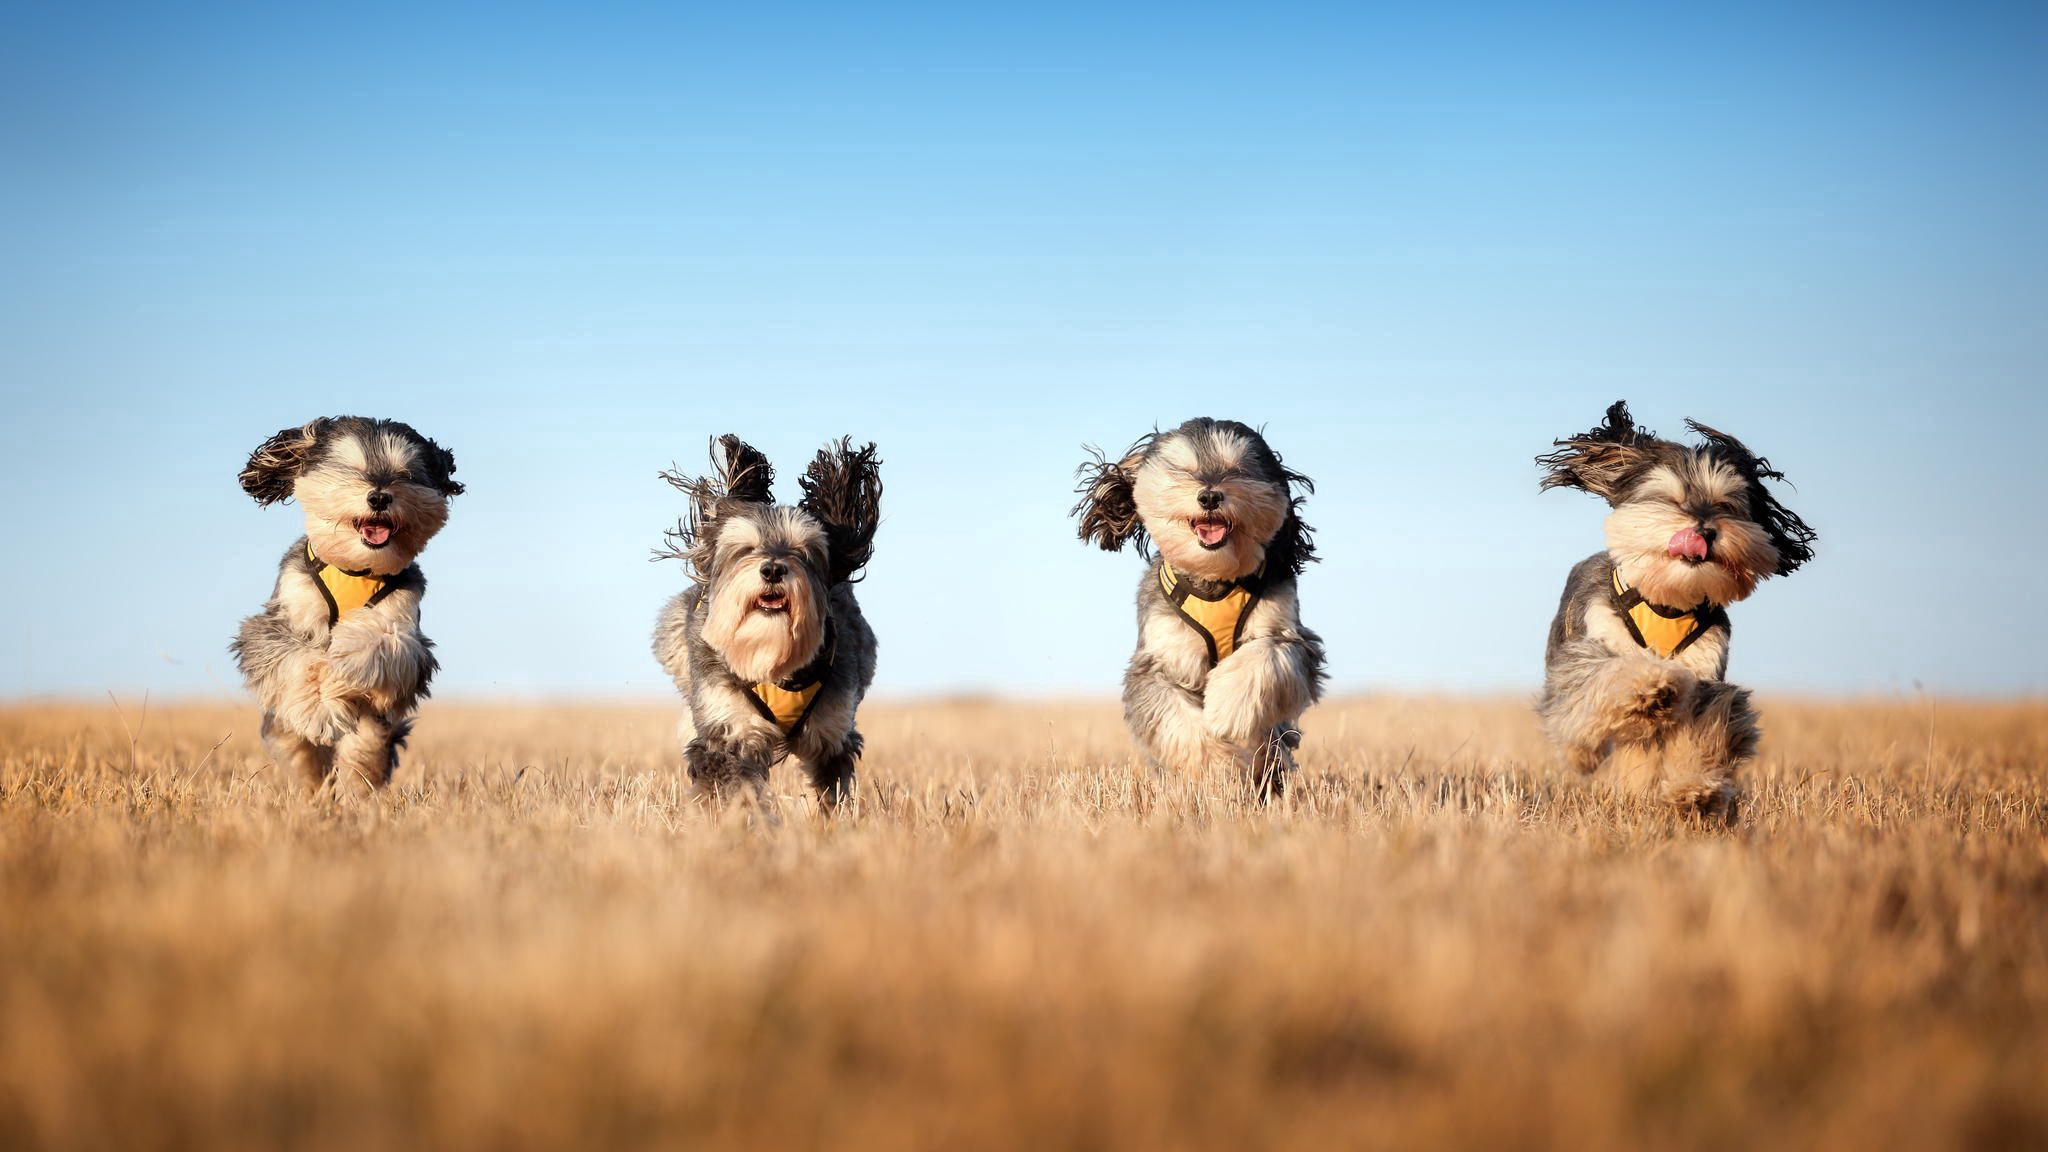 84029 download wallpaper Animals, Dogs, Run Away, Run, Grass, Wind screensavers and pictures for free